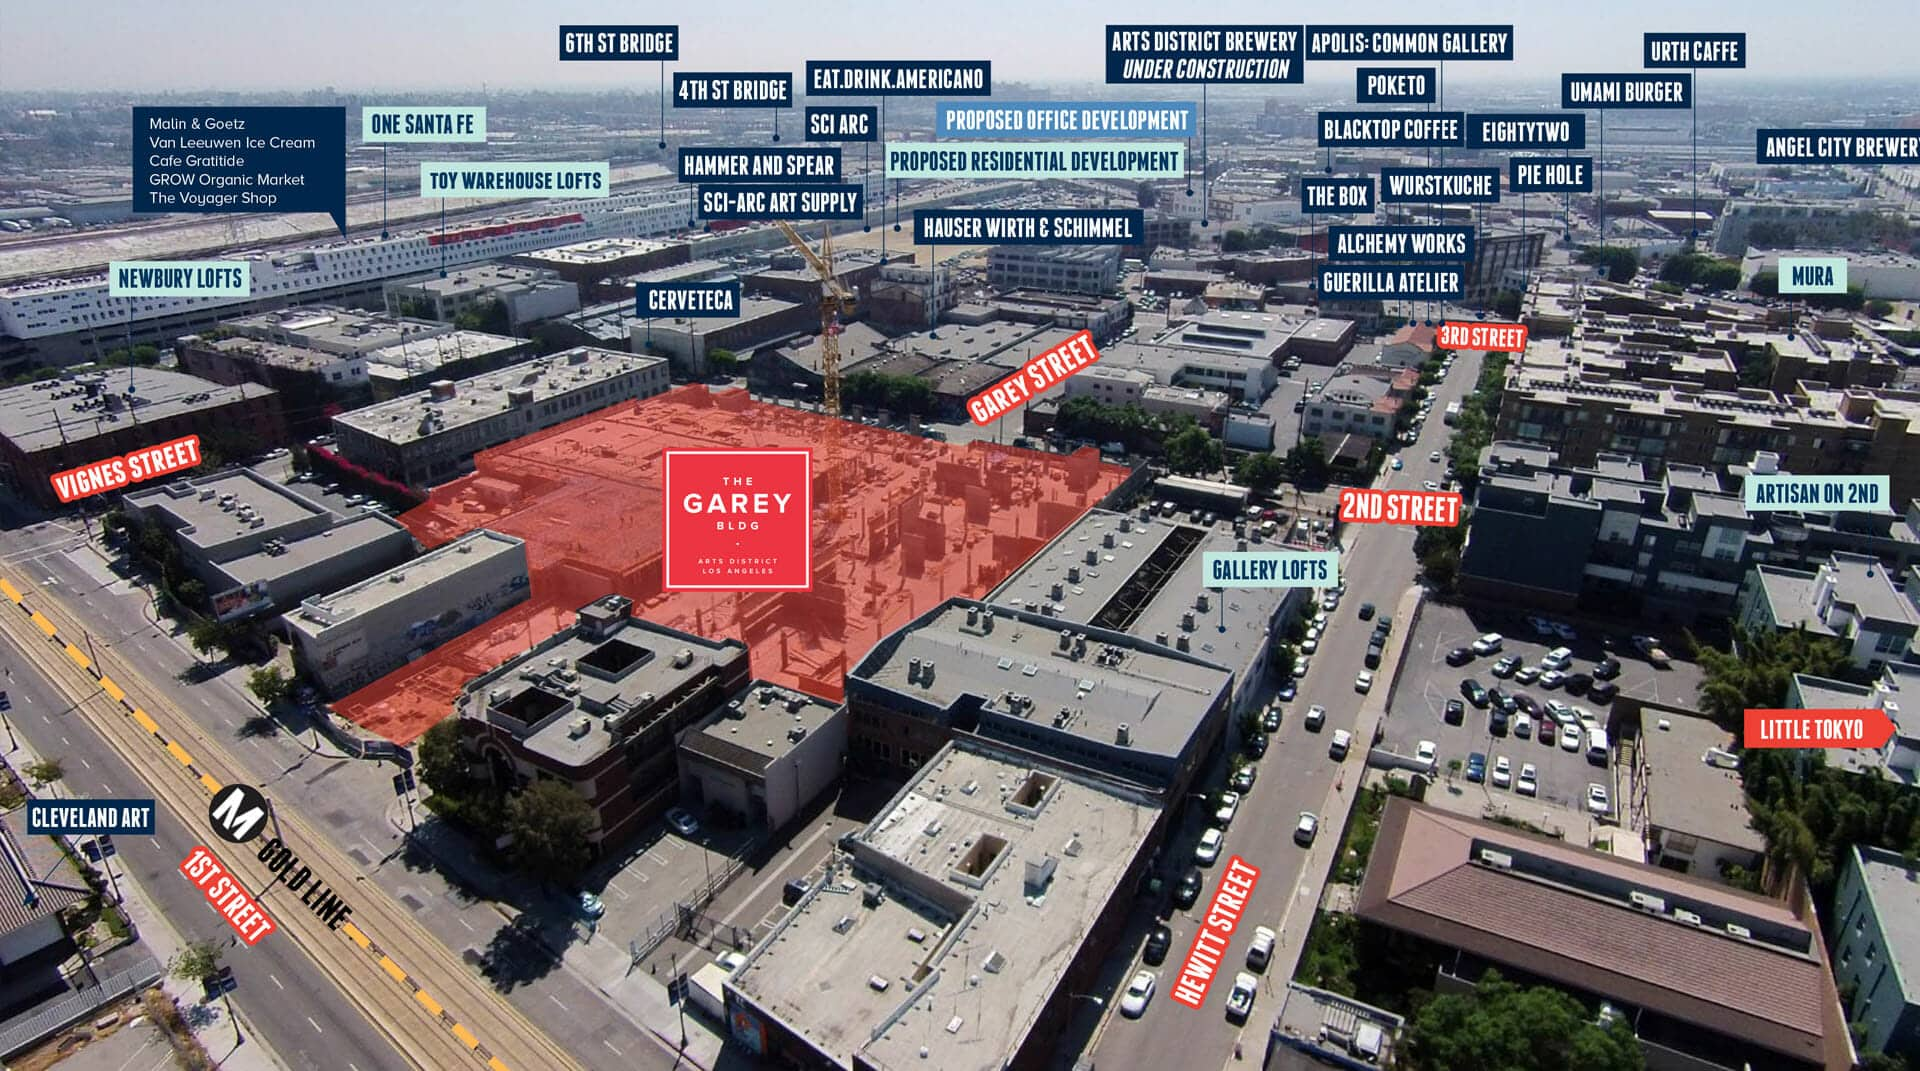 The North Arts District Quickly Becoming The Most Interesting District Downtown Here Comes The Garey on Apartments For Rent Los Angeles